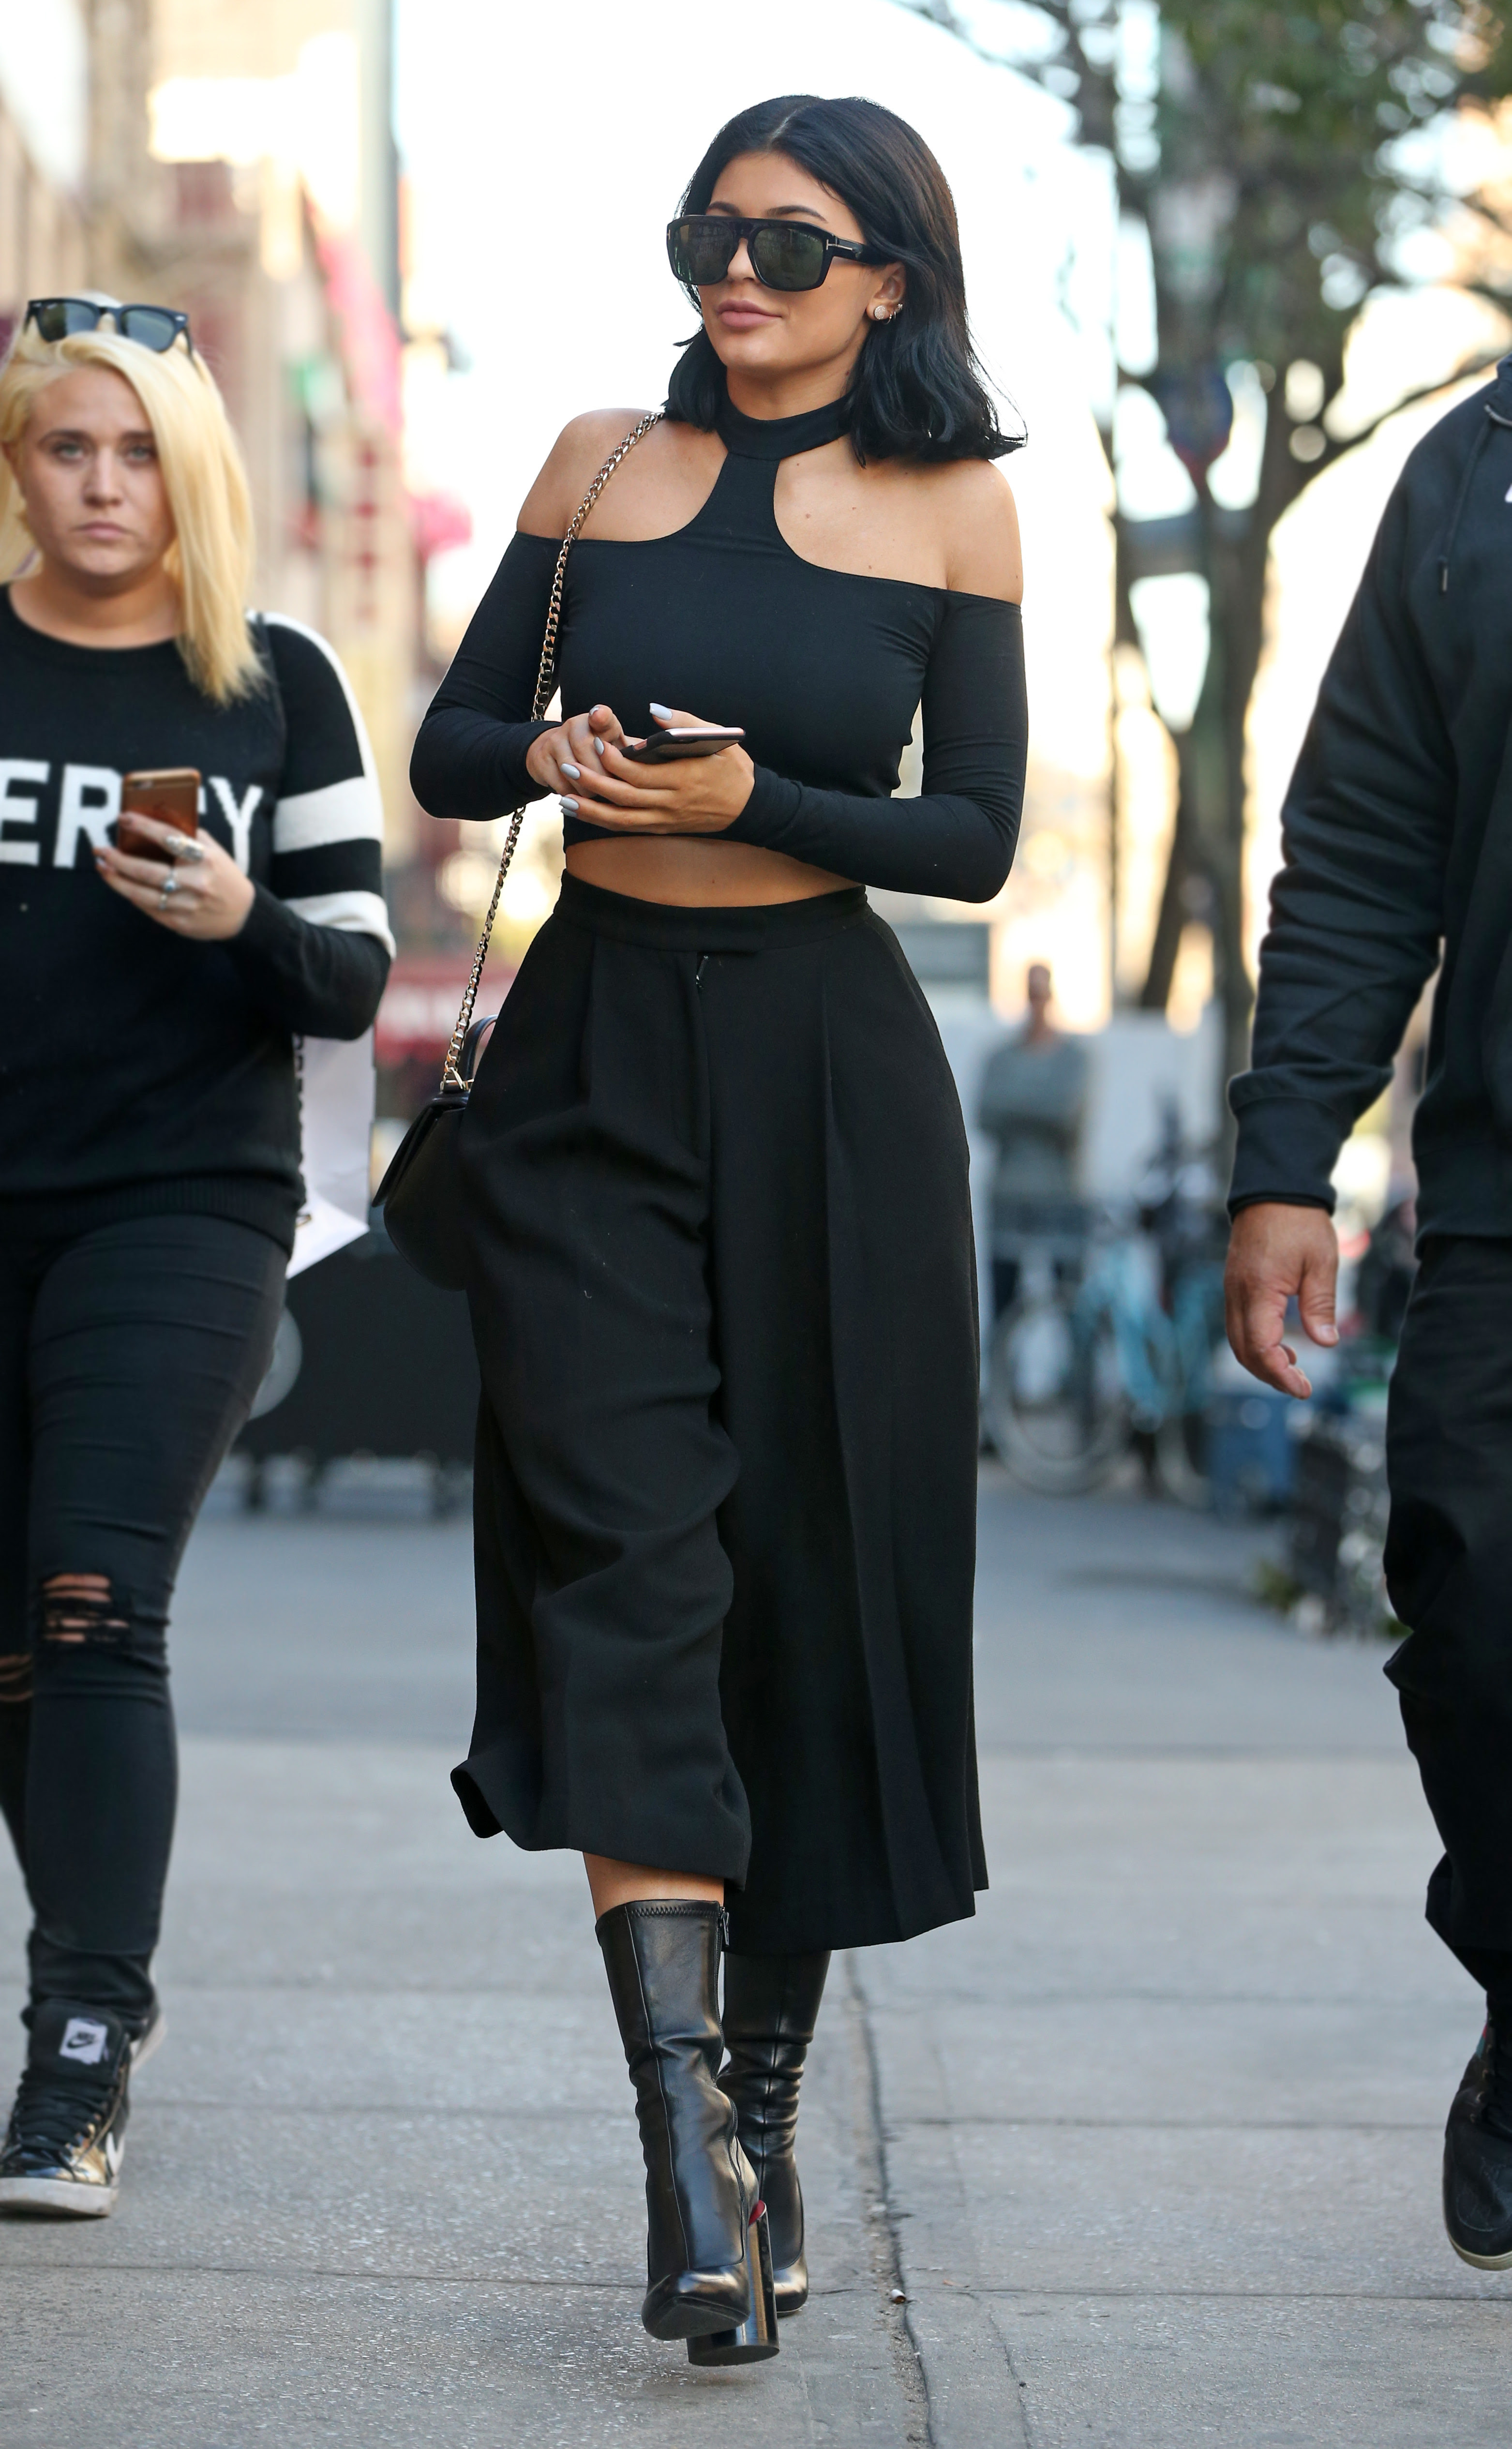 kendall and kylie jenner street style  kendall and kylie